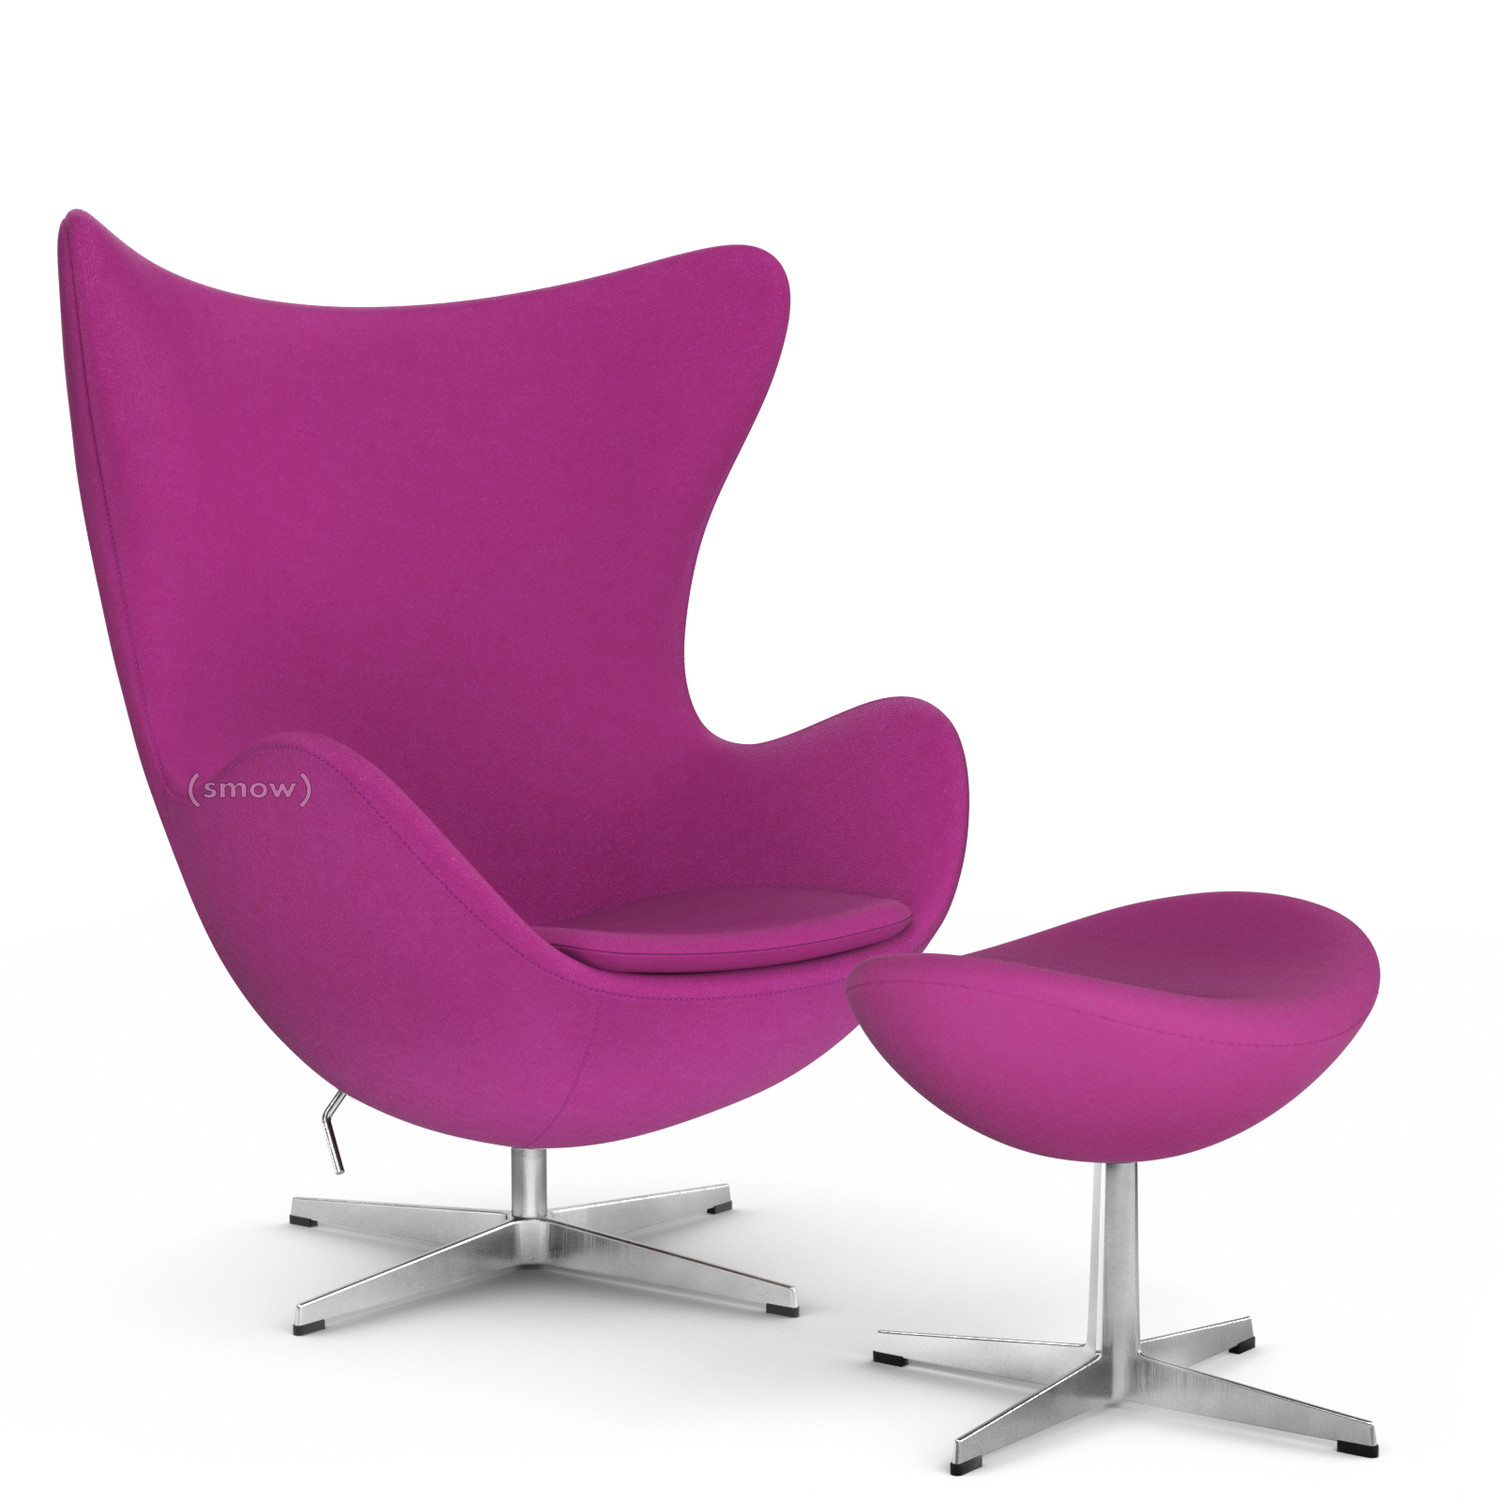 Exceptionnel Egg Chair Divina|Dark Pink|With Footstool